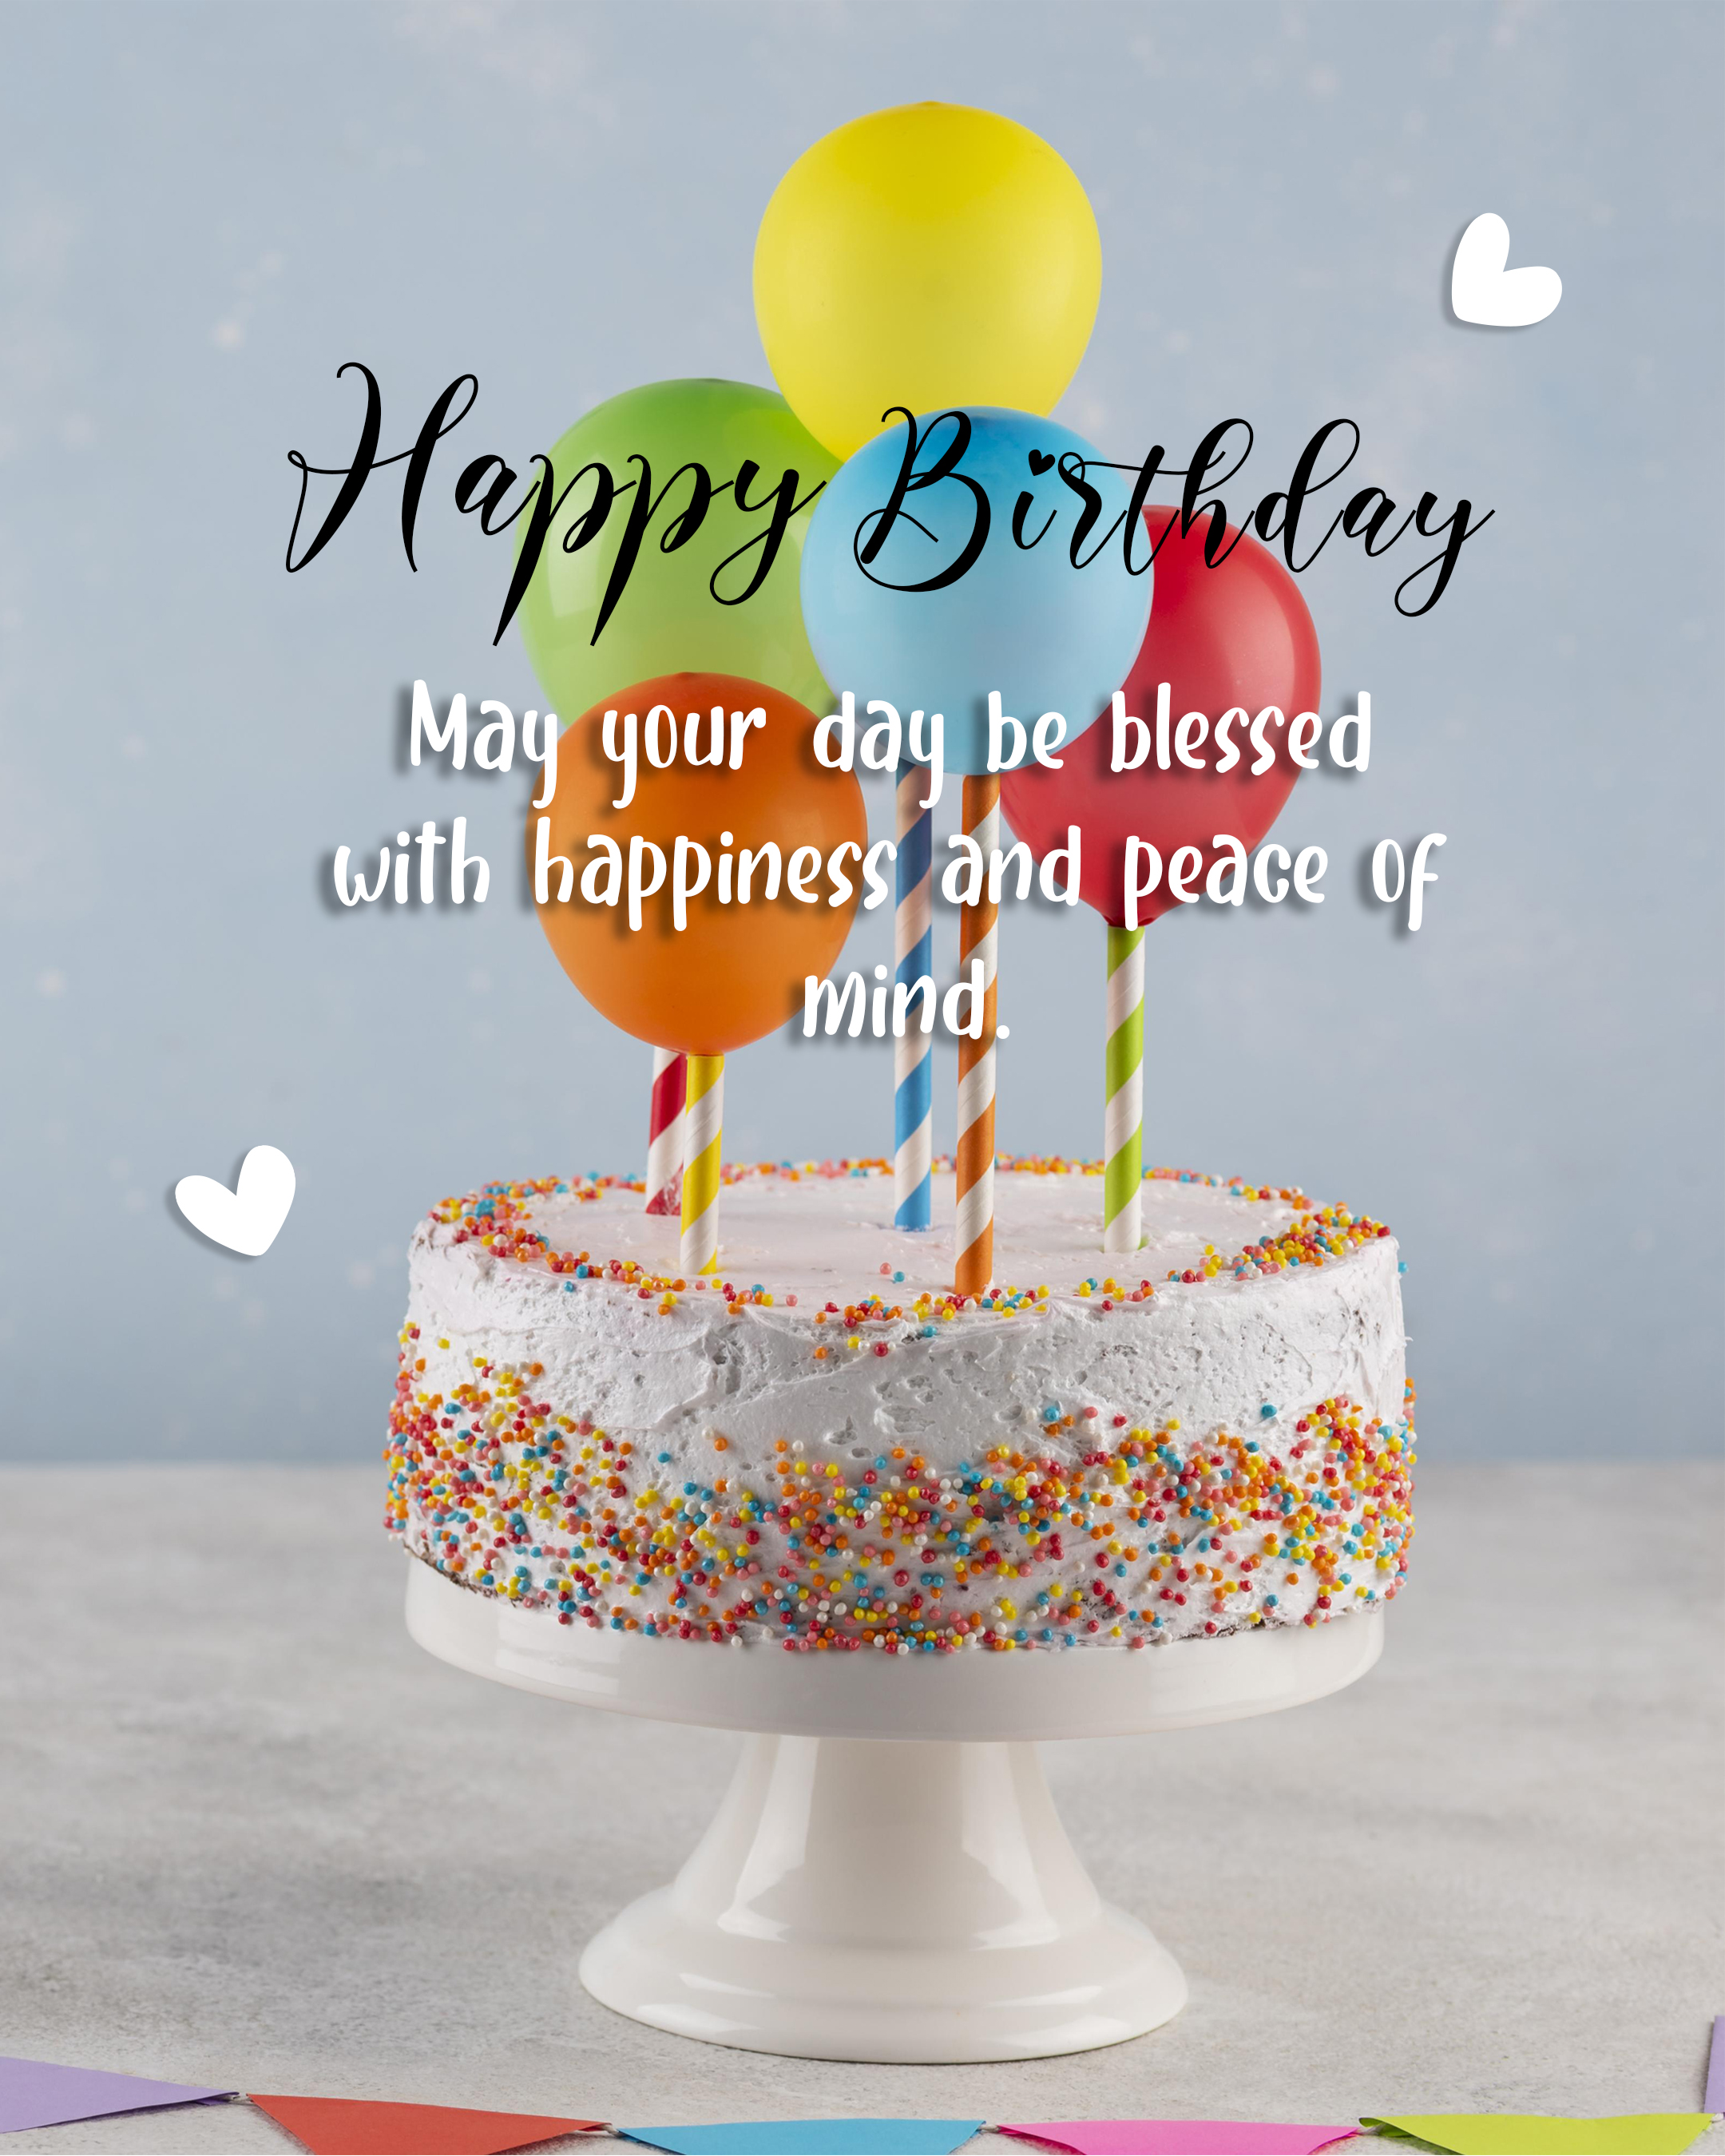 Free Happy Birthday Image With Blessings - birthdayimg.com